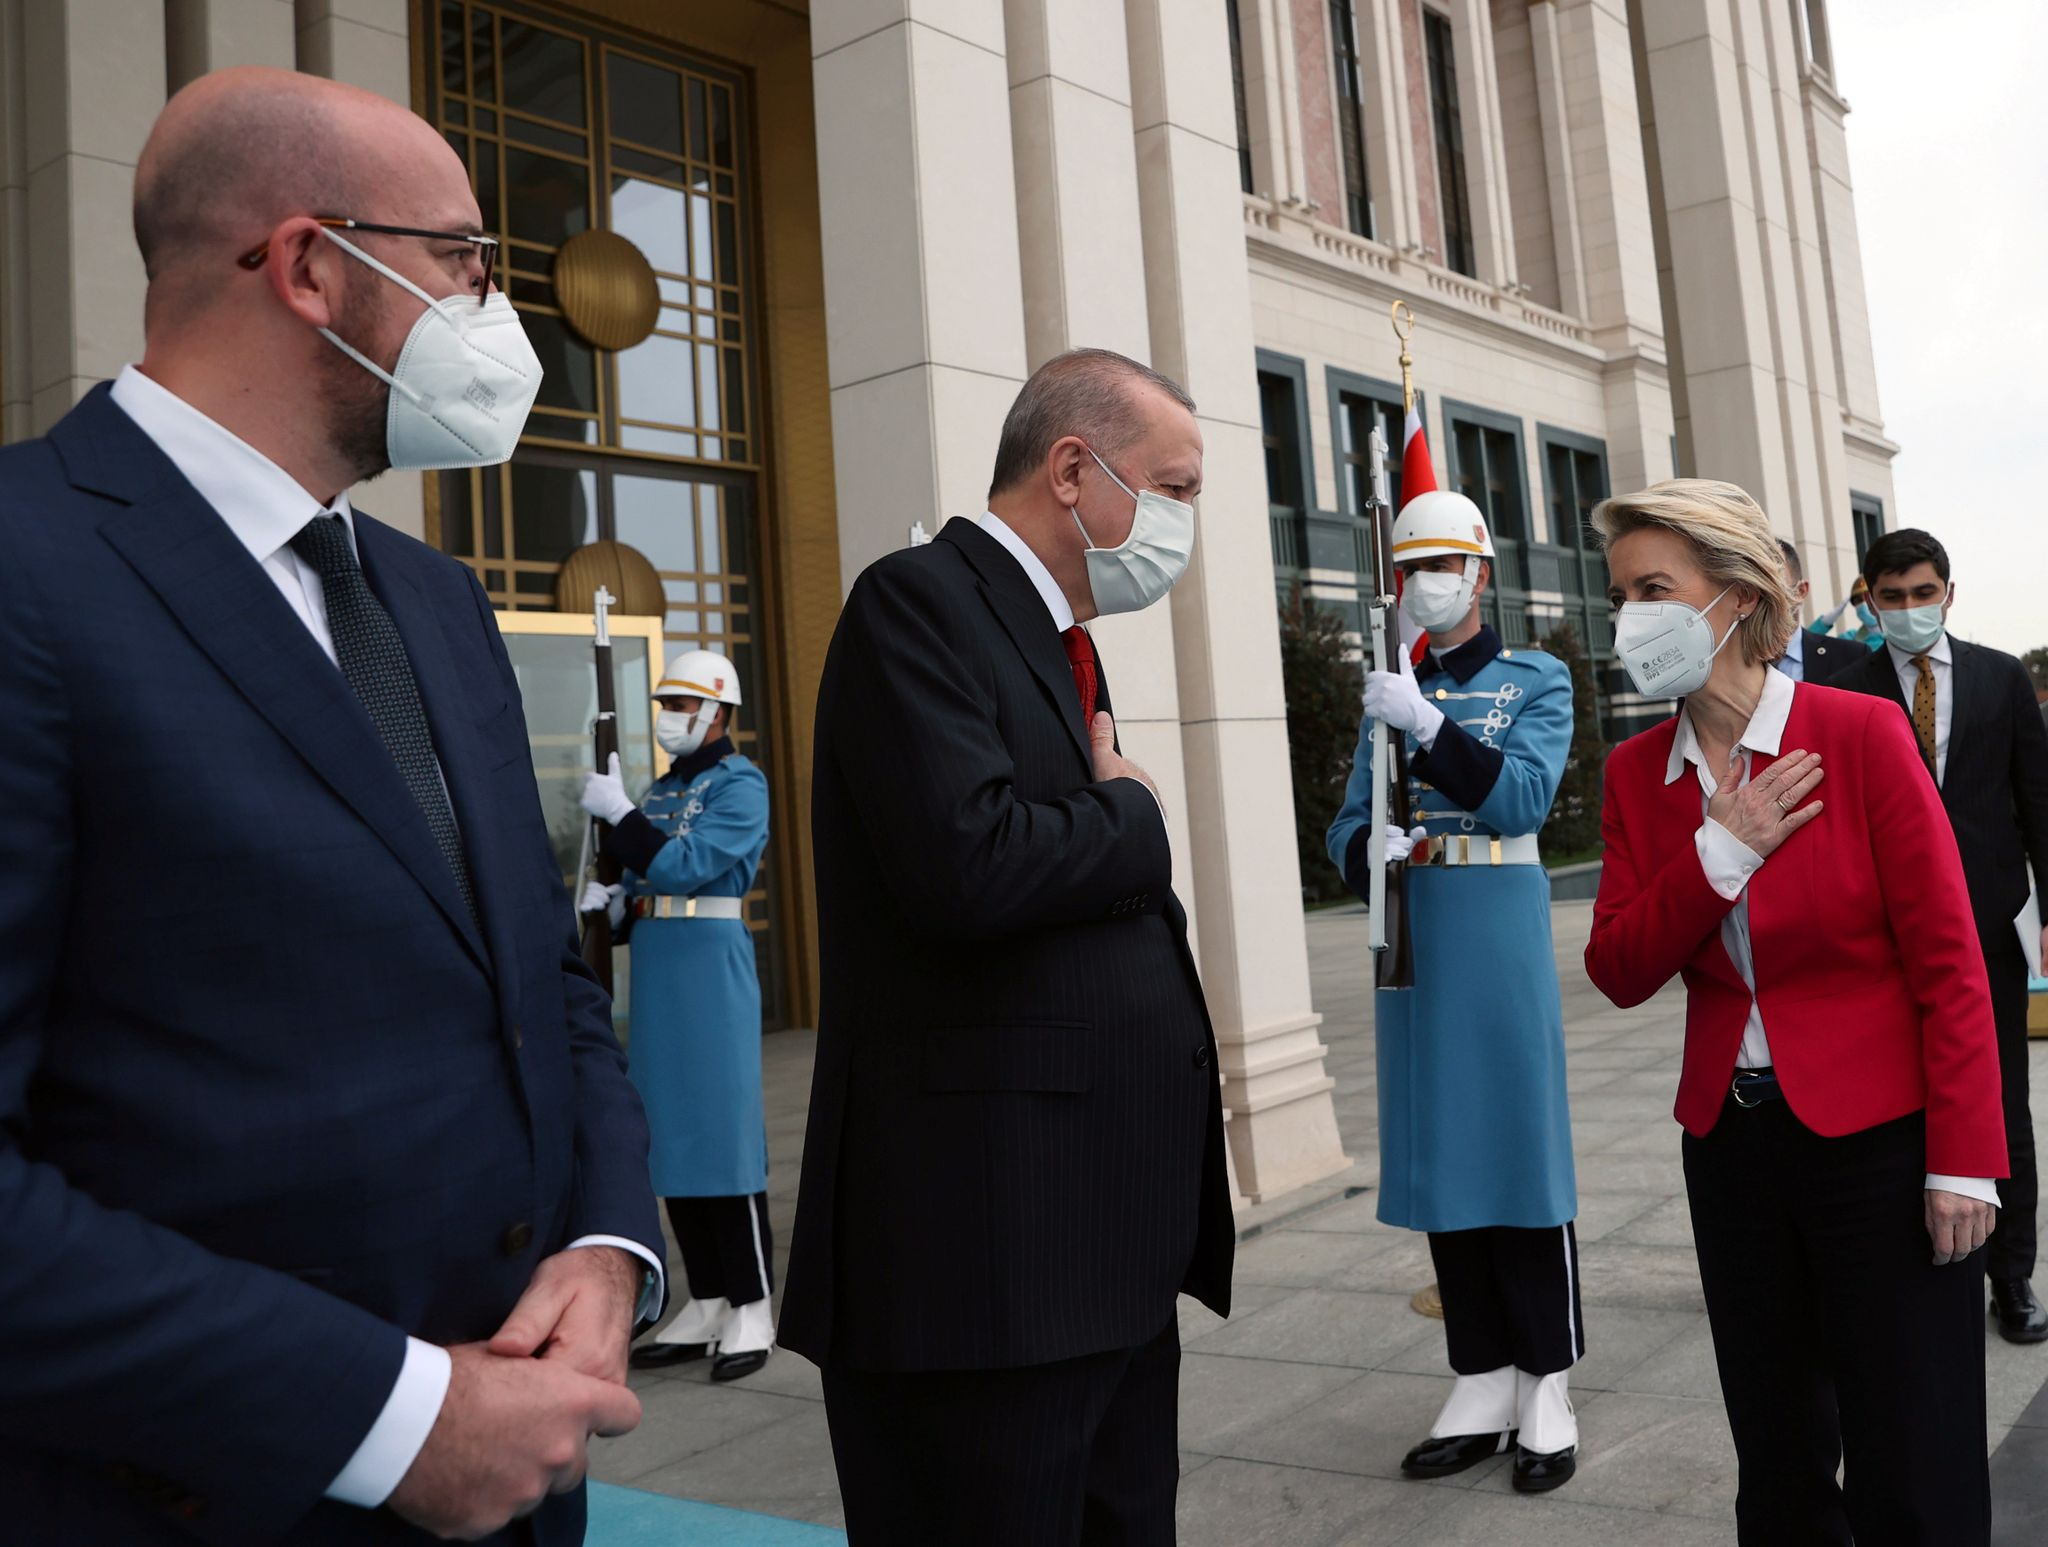 No chair for the EU president when she visited Turkey - World Today News